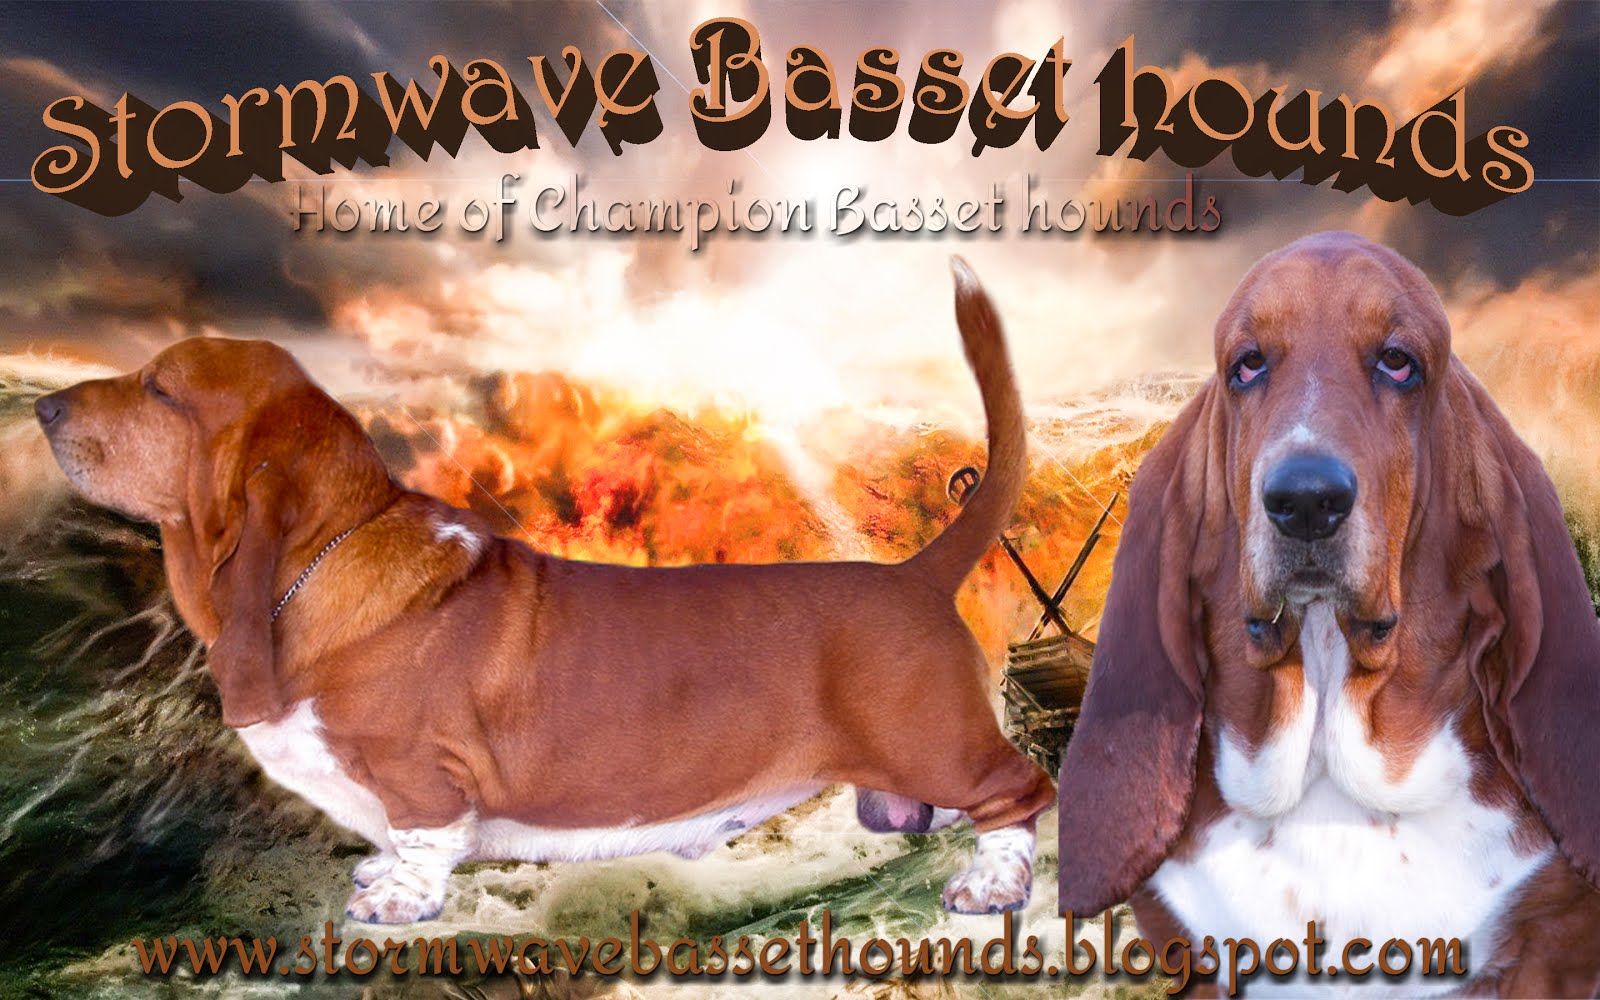 Stormwave Basset hounds